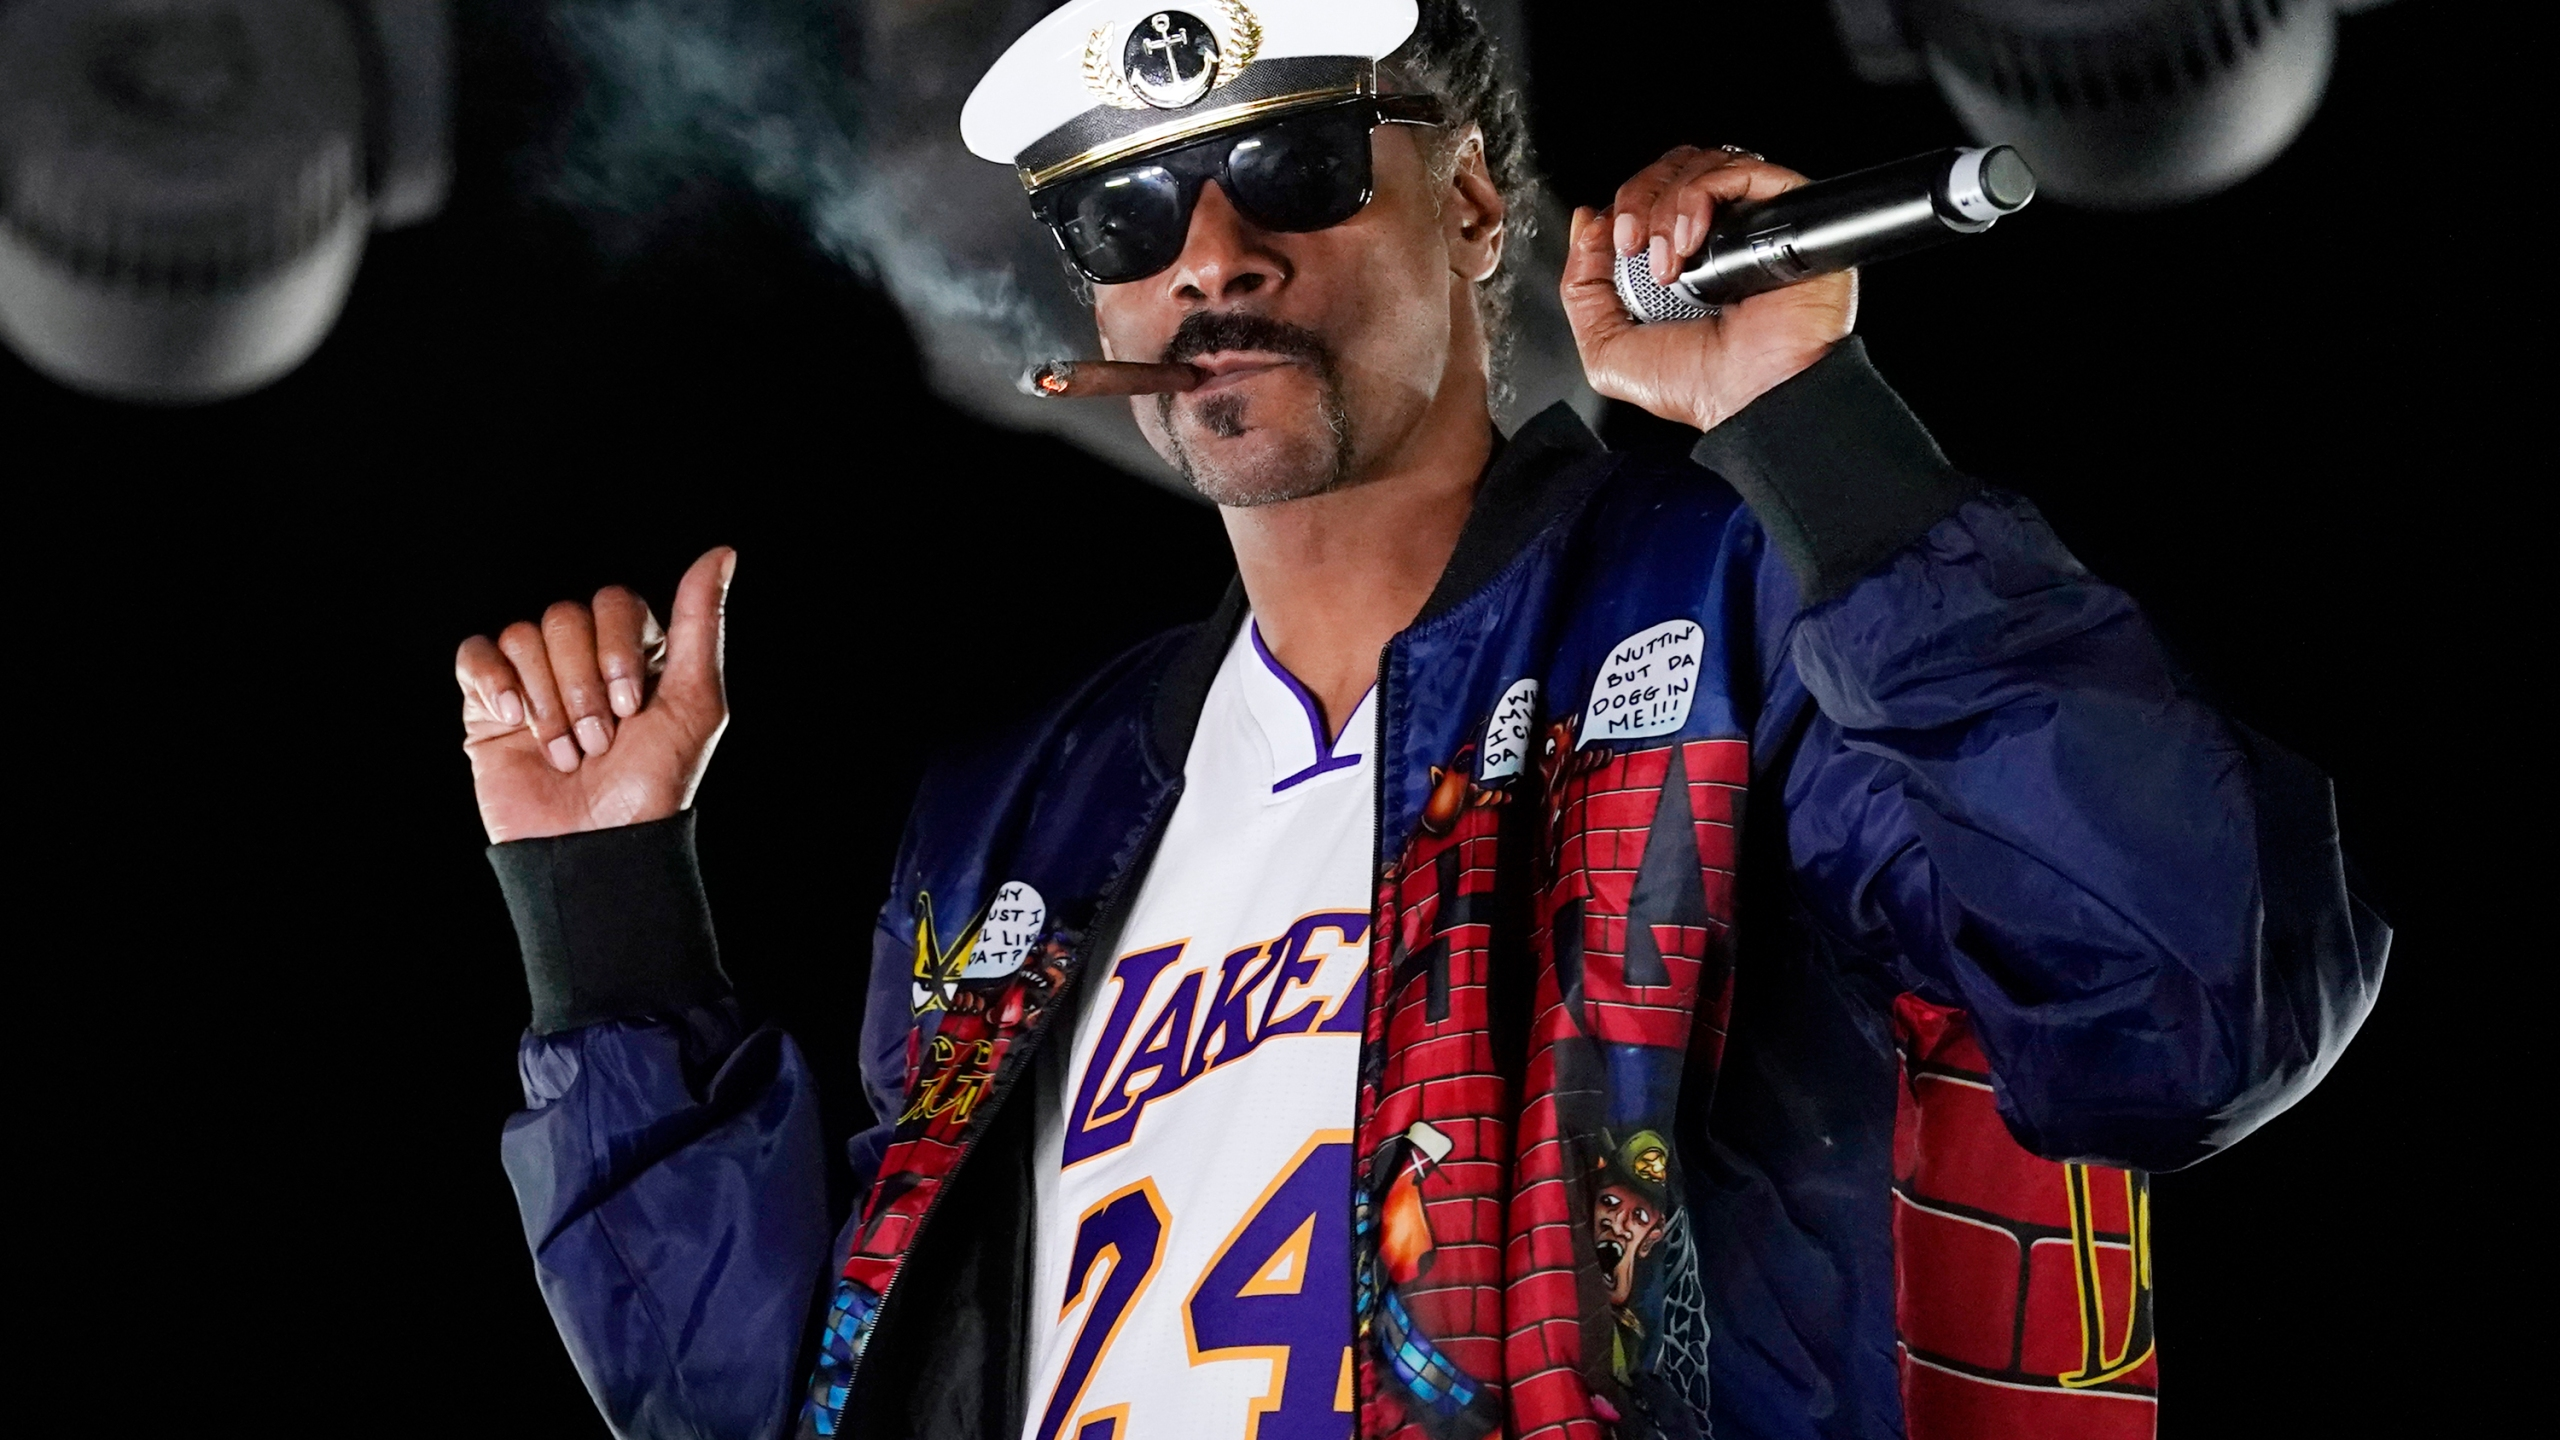 """Snoop Dogg performs a DJ set as """"DJ Snoopadelic"""" during the """"Concerts In Your Car"""" series on Oct. 2, 2020, in Ventura. (Chris Pizzello/Associated Press)"""